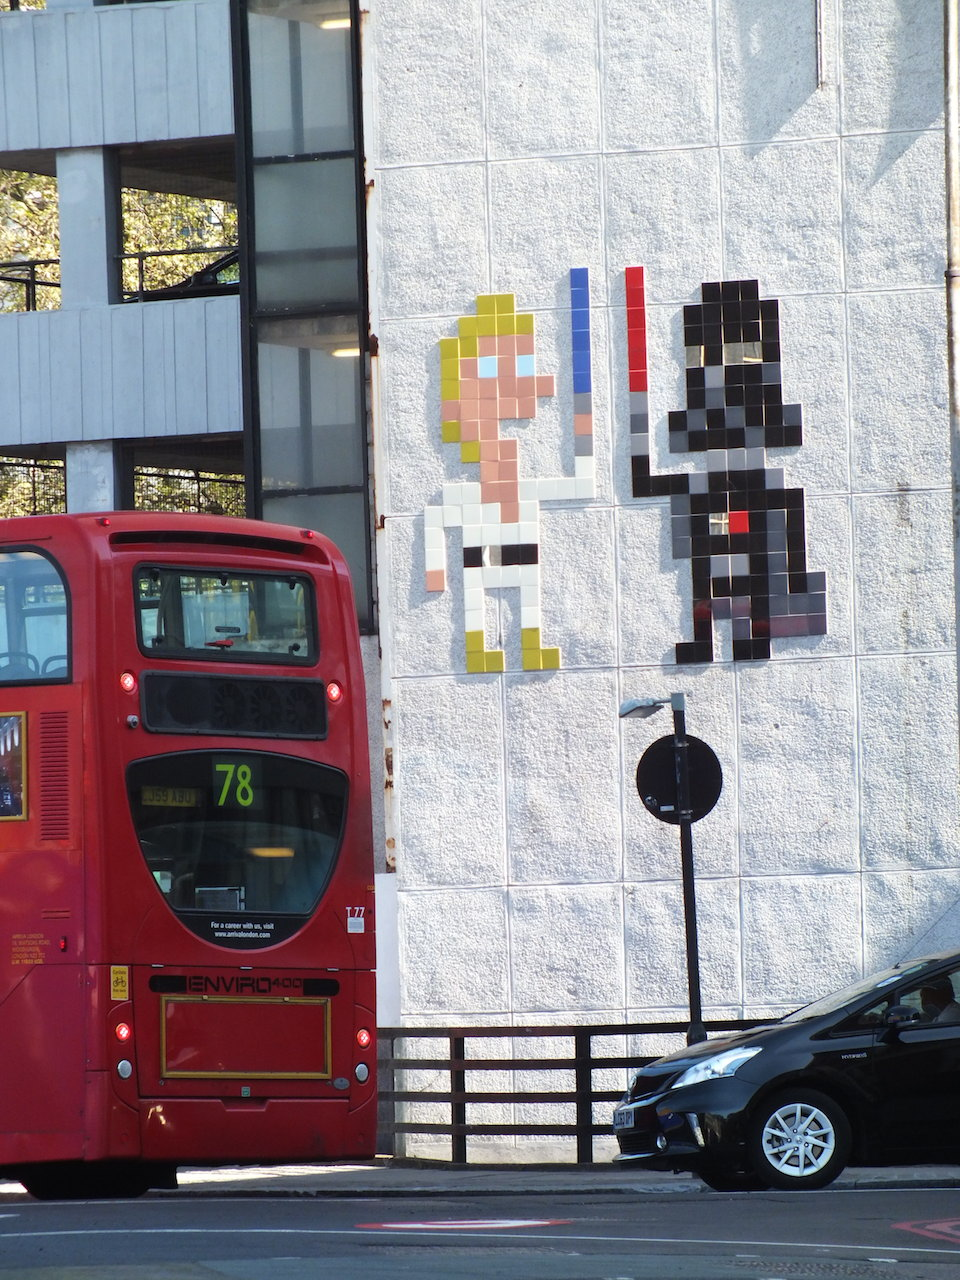 Star Wars street art by Invader in London, England 5